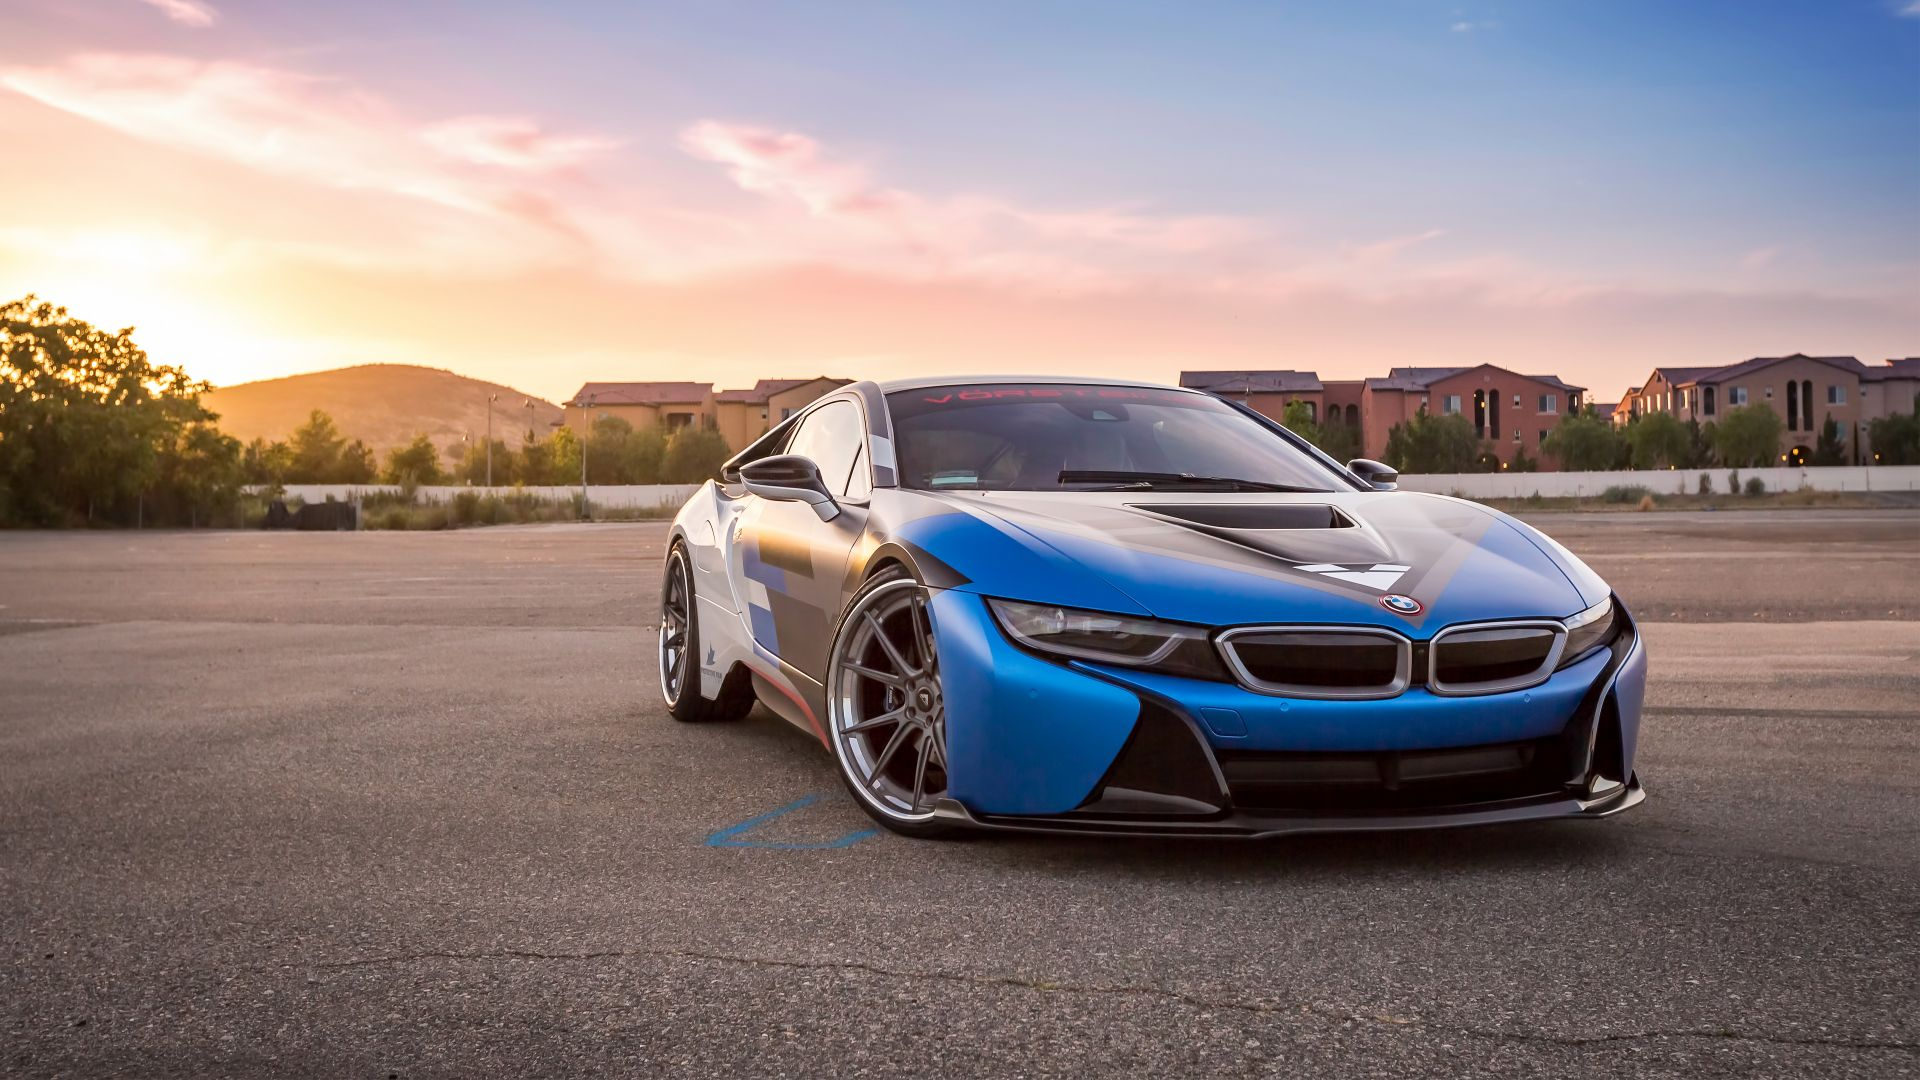 wallpaper vorsteiner vr e bmw i8 supercar sport cars blue cars bikes 10769. Black Bedroom Furniture Sets. Home Design Ideas